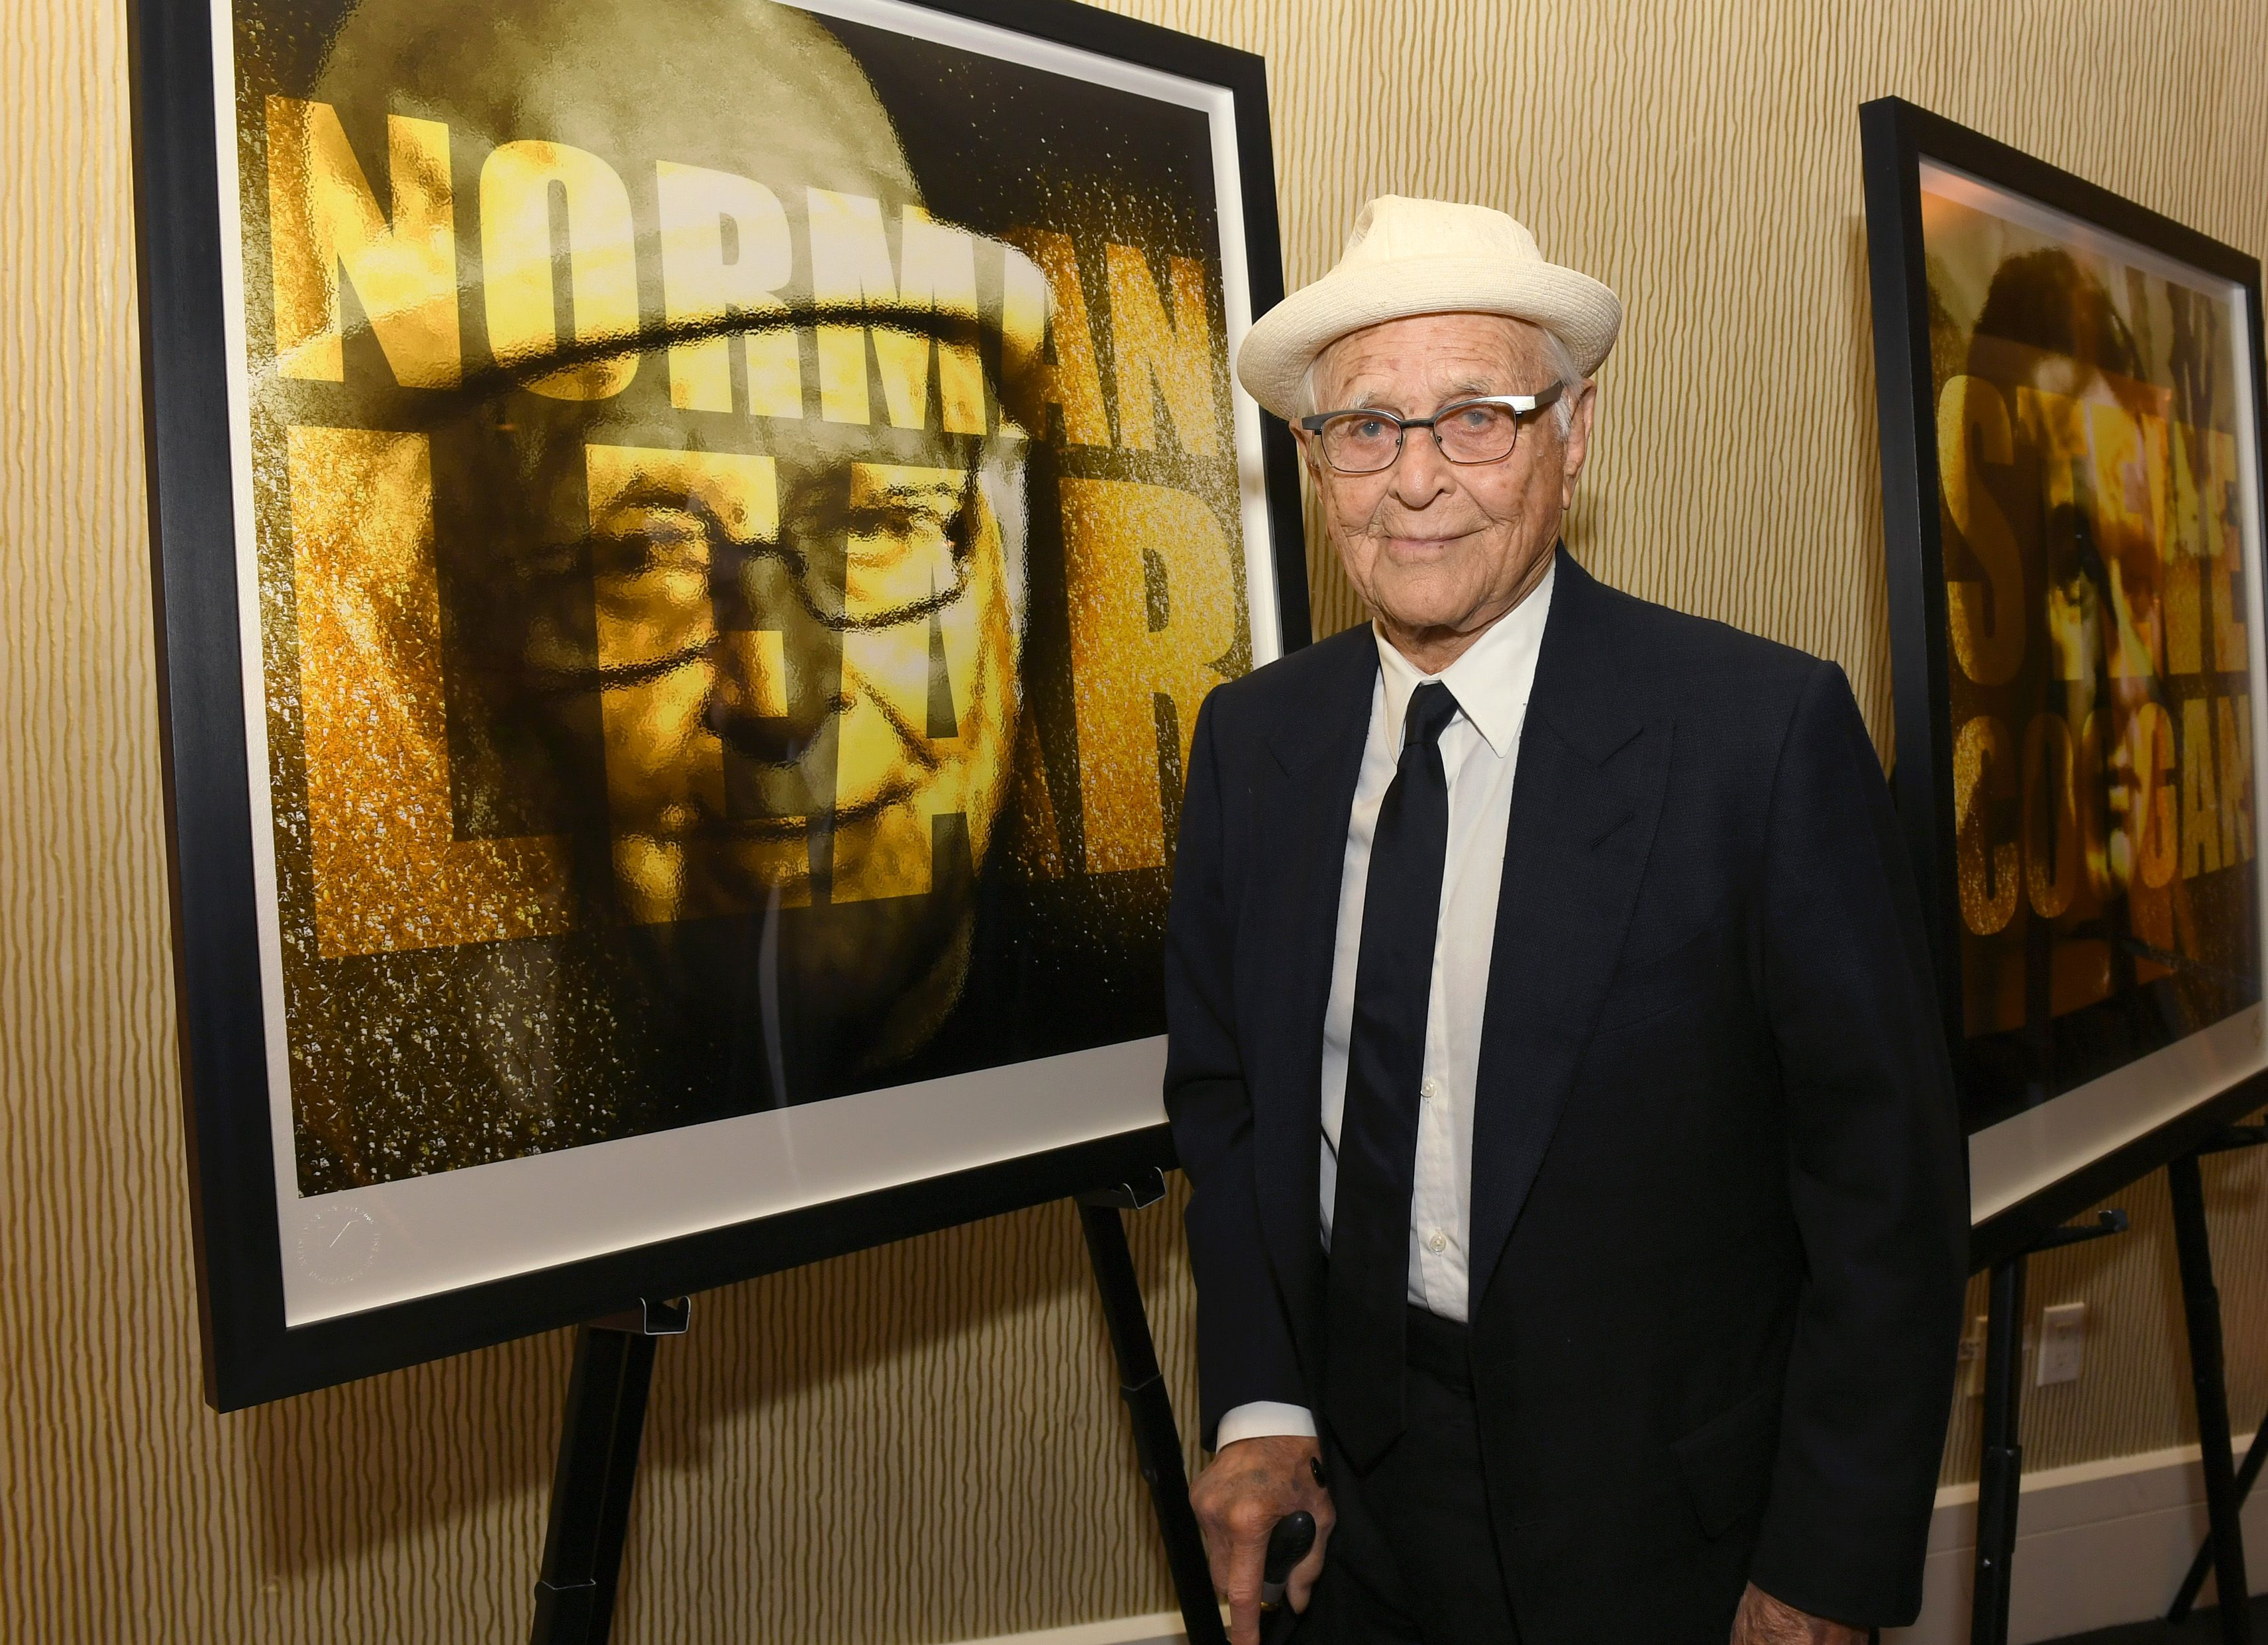 Norman Lear at the 2019 British Academy Britannia Awards presented by American Airlines and Jaguar Land Rover at The Beverly Hilton Hotel on October 25, 2019 | Photo: Getty Images